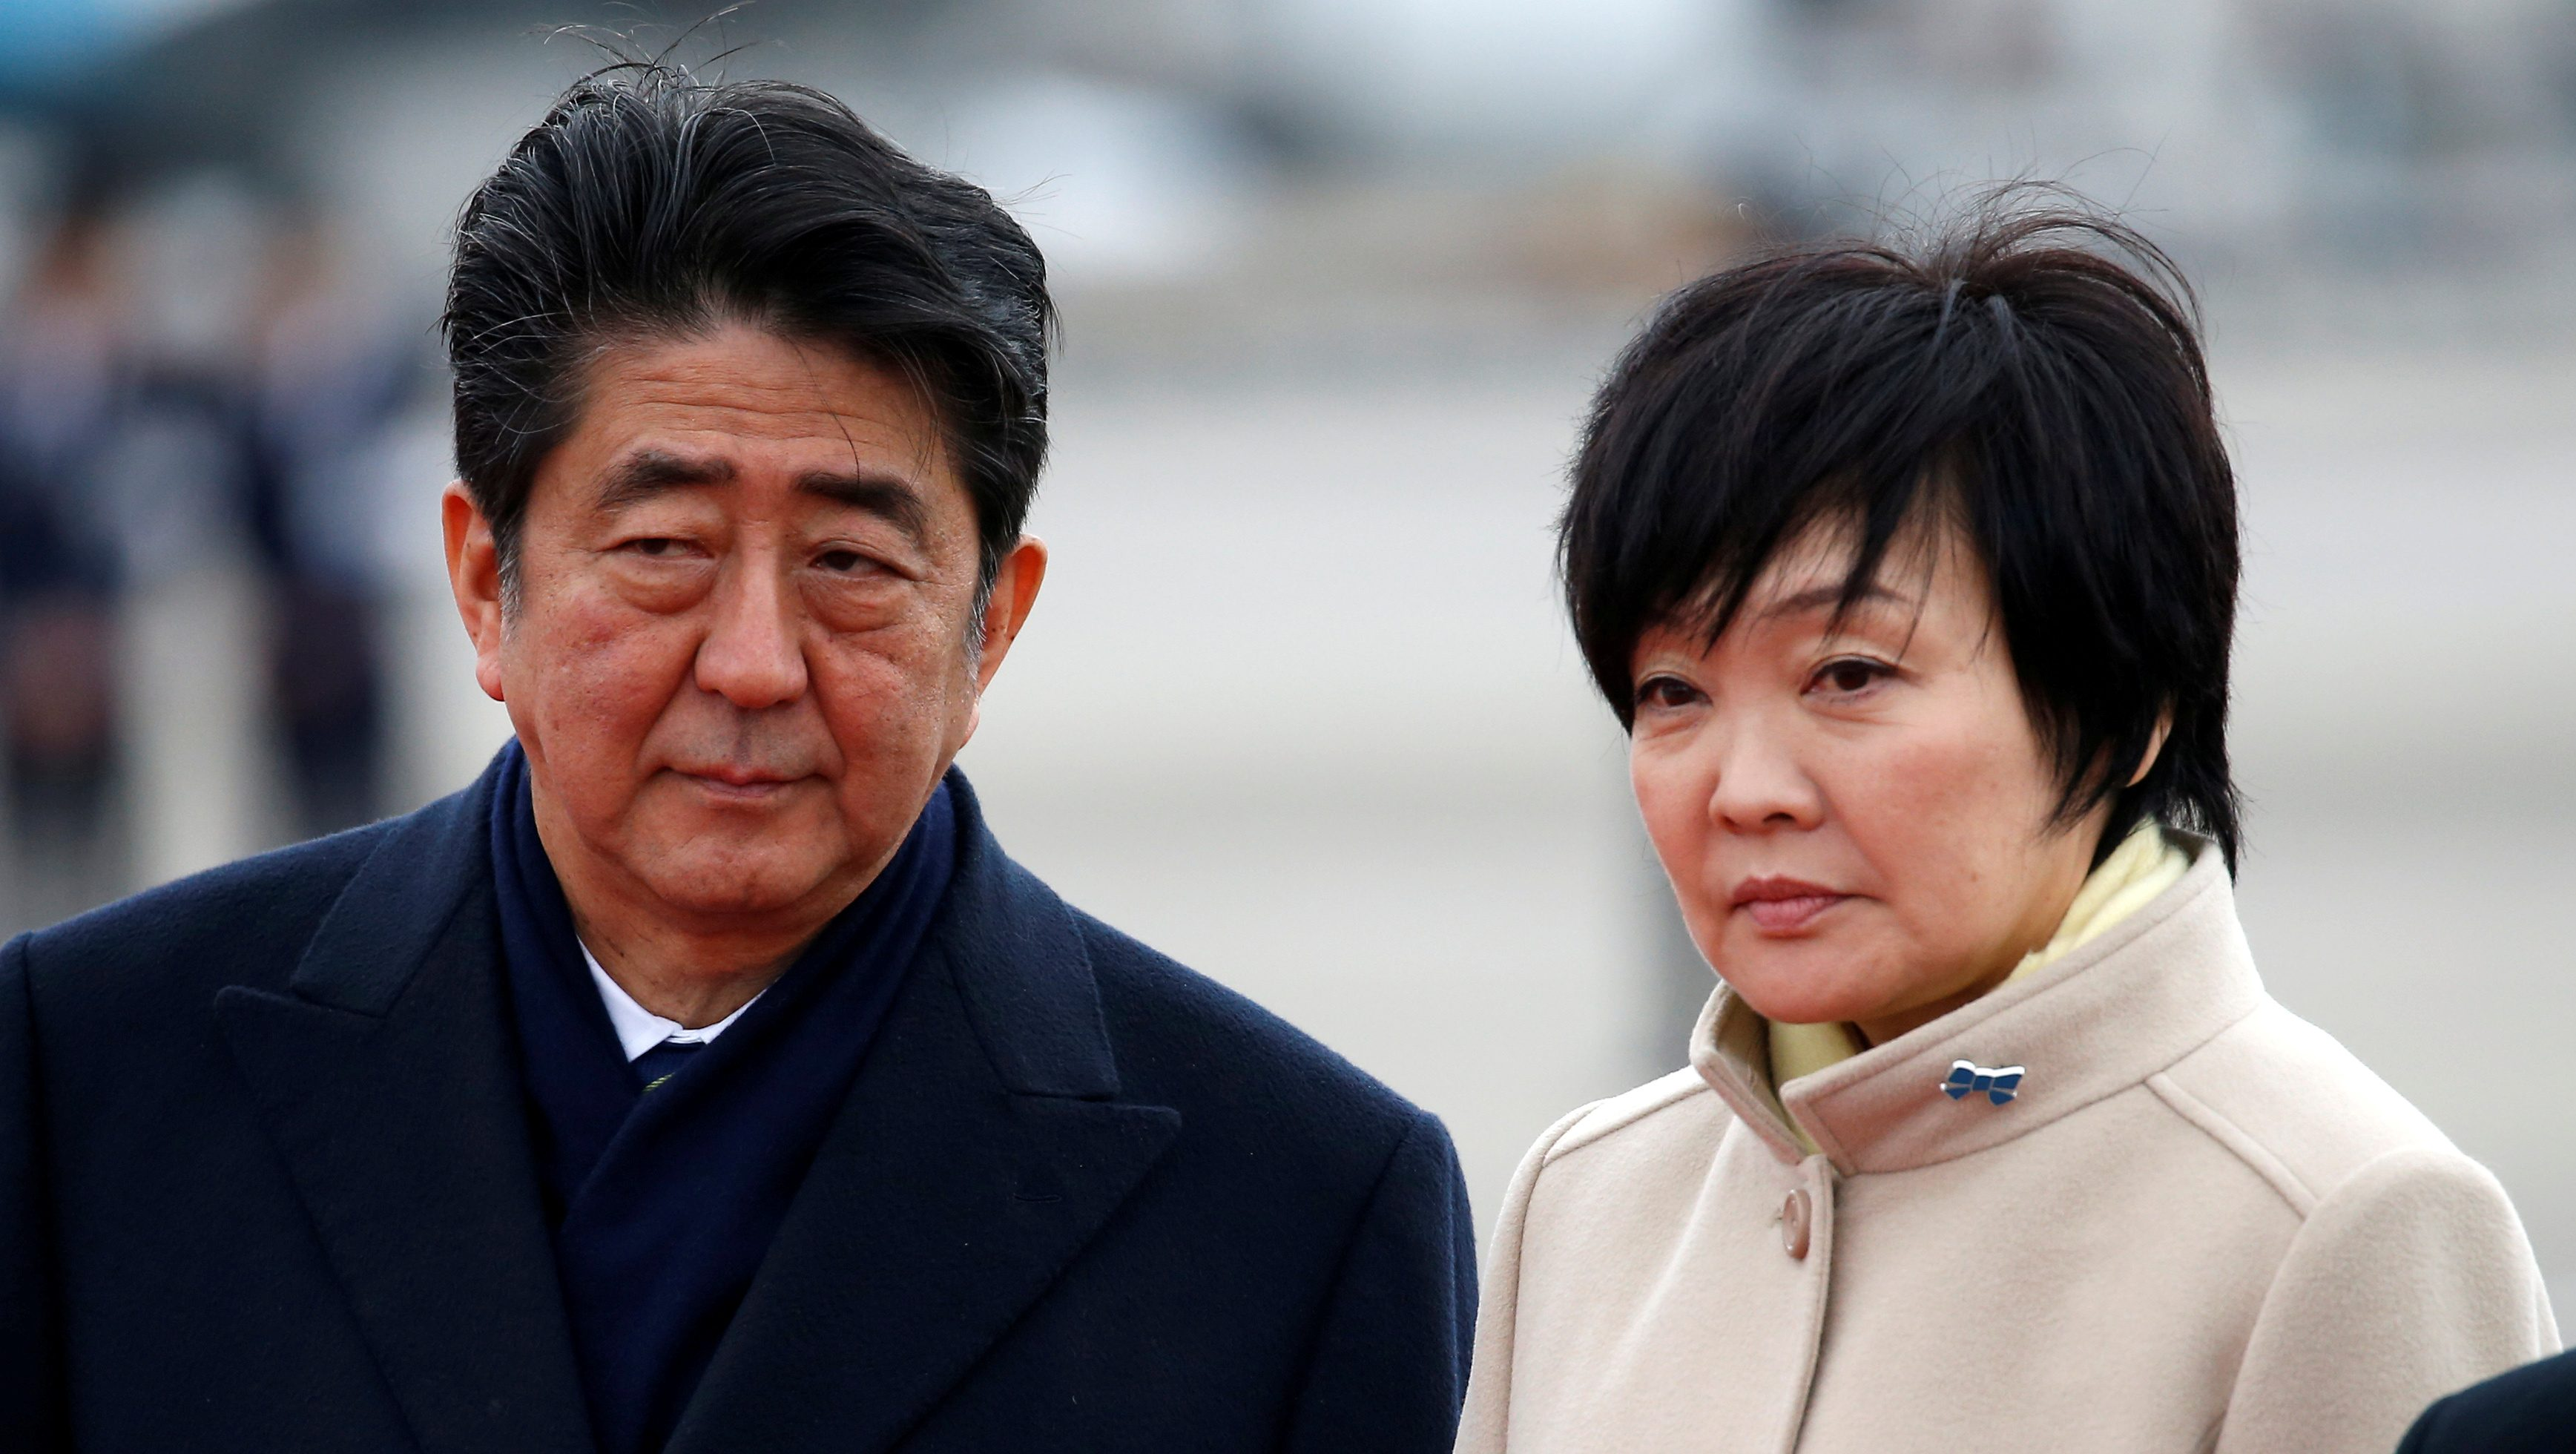 Japan's Prime Minister Shinzo Abe (L) and his wife Akie at Haneda Airport in Tokyo, Japan February 28, 2017.